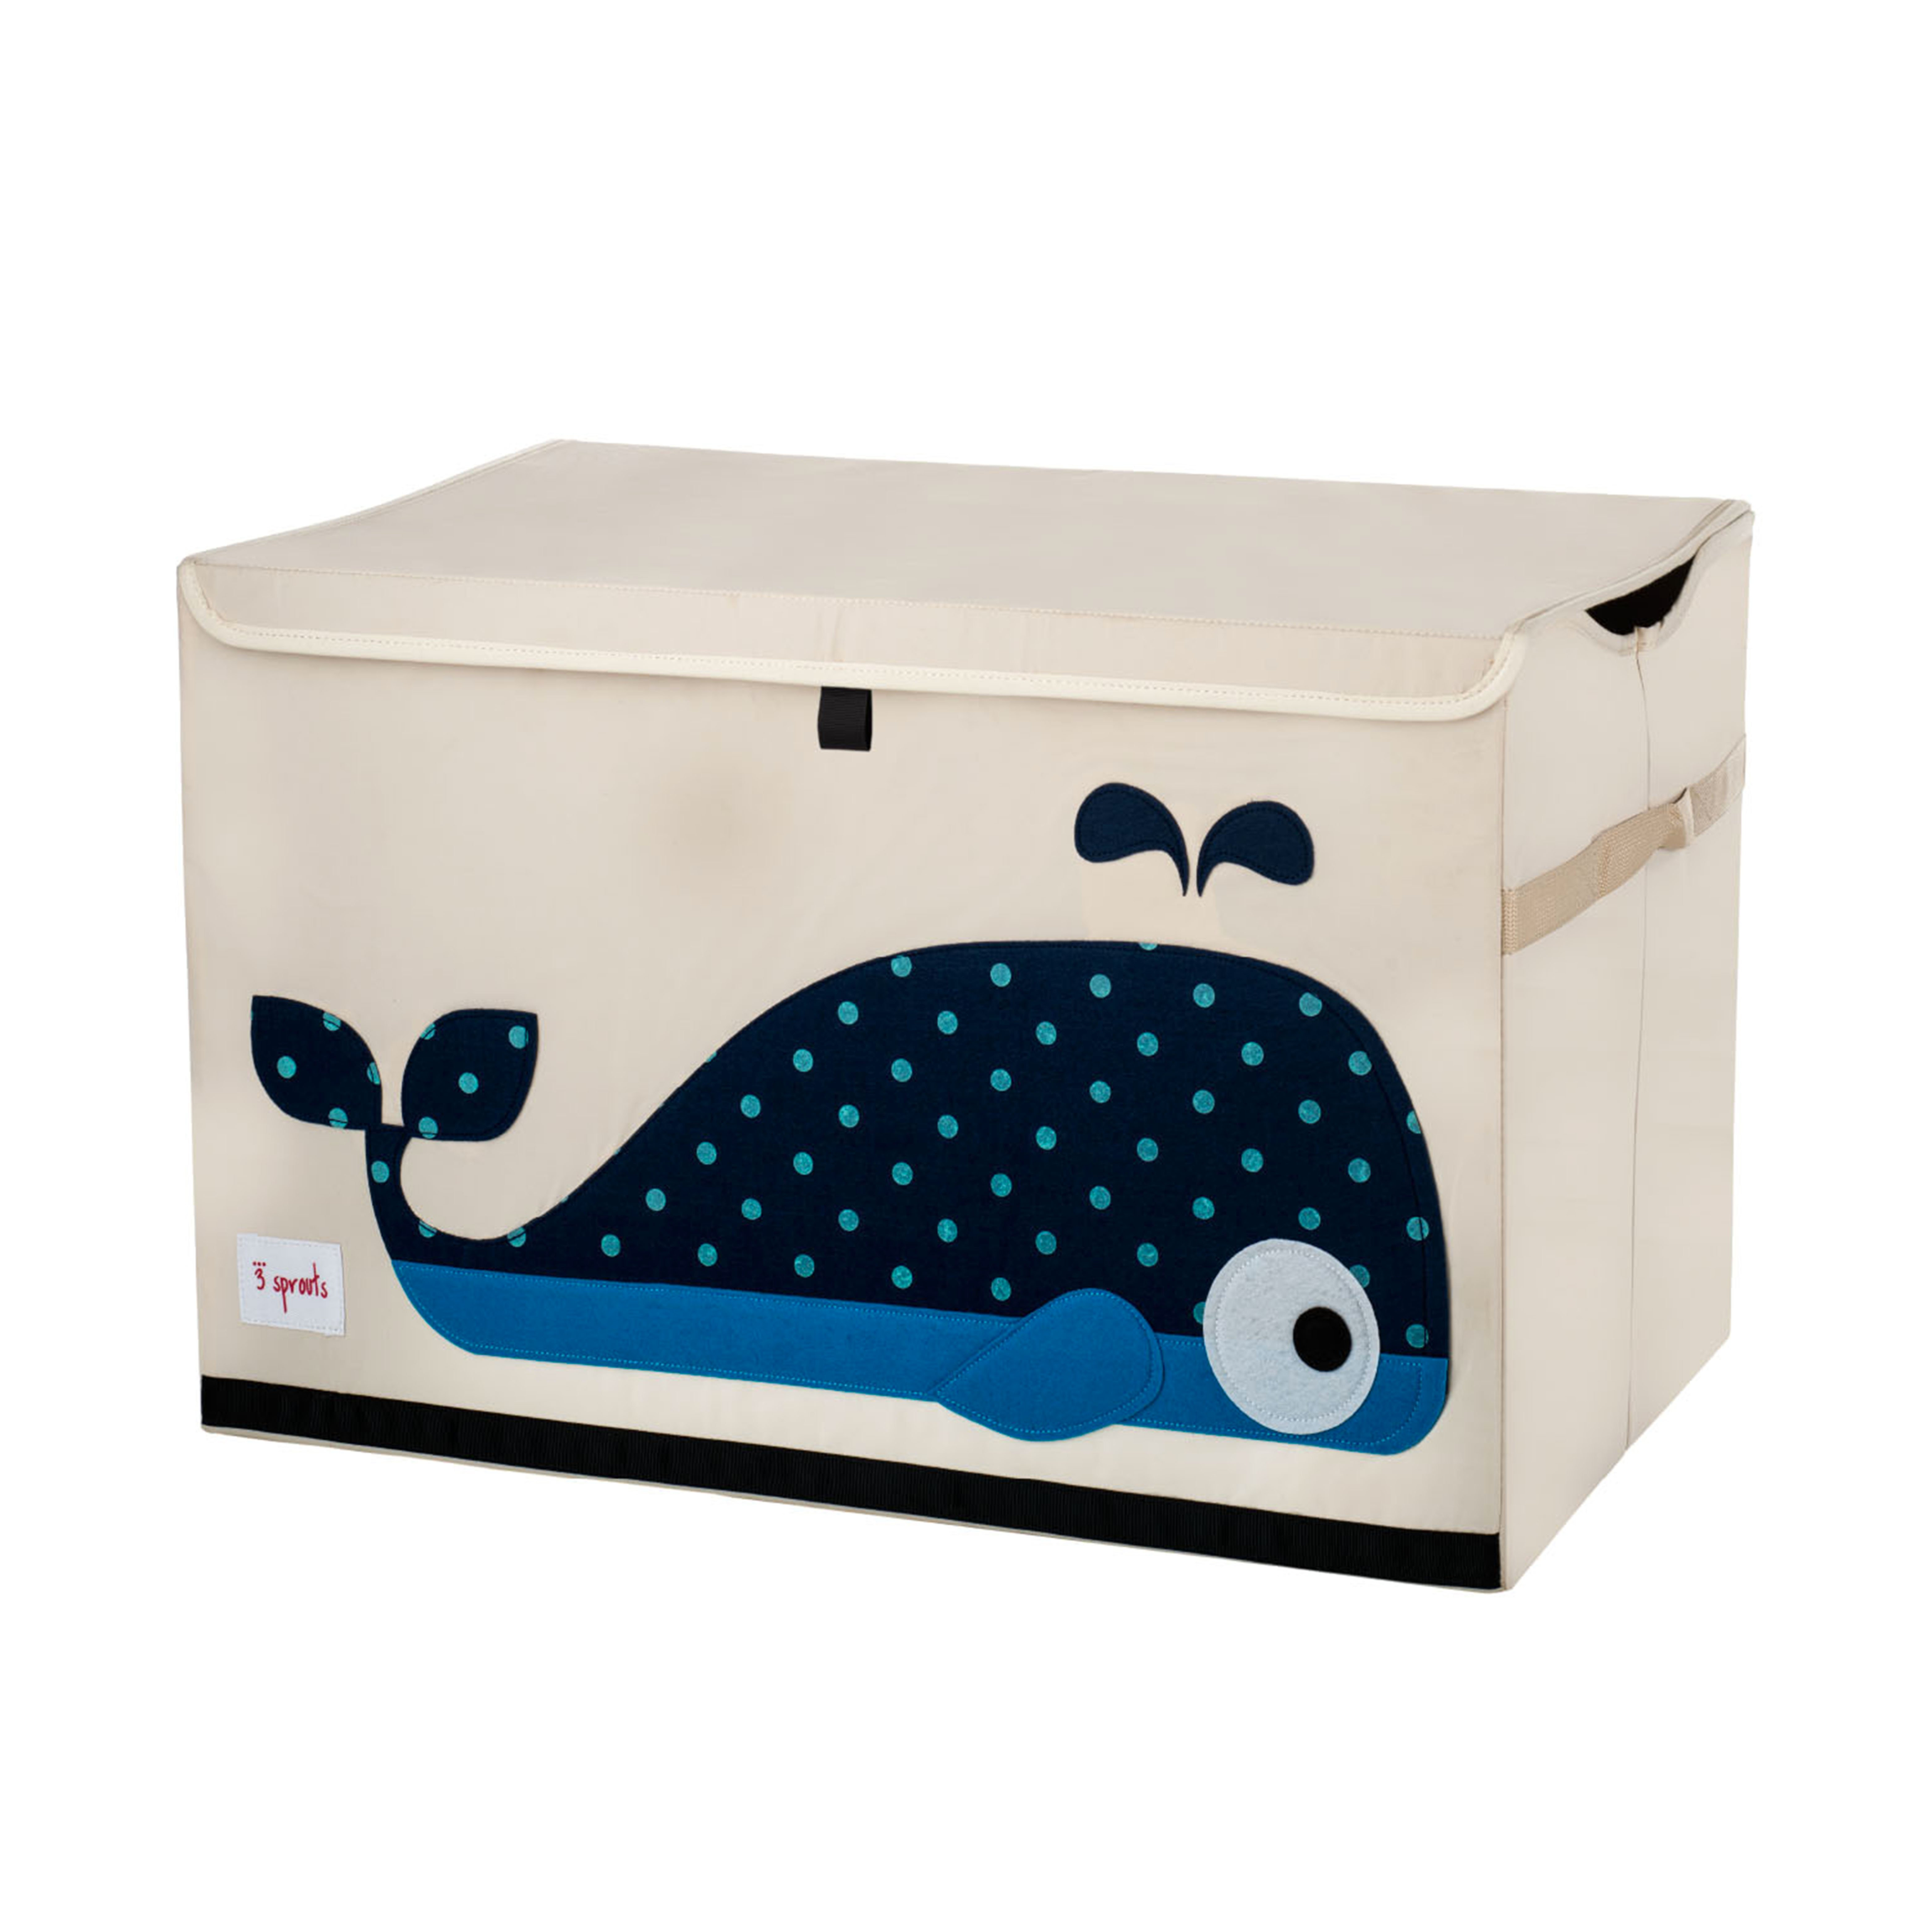 3 Sprouts - Toy Chest - Blue Whale